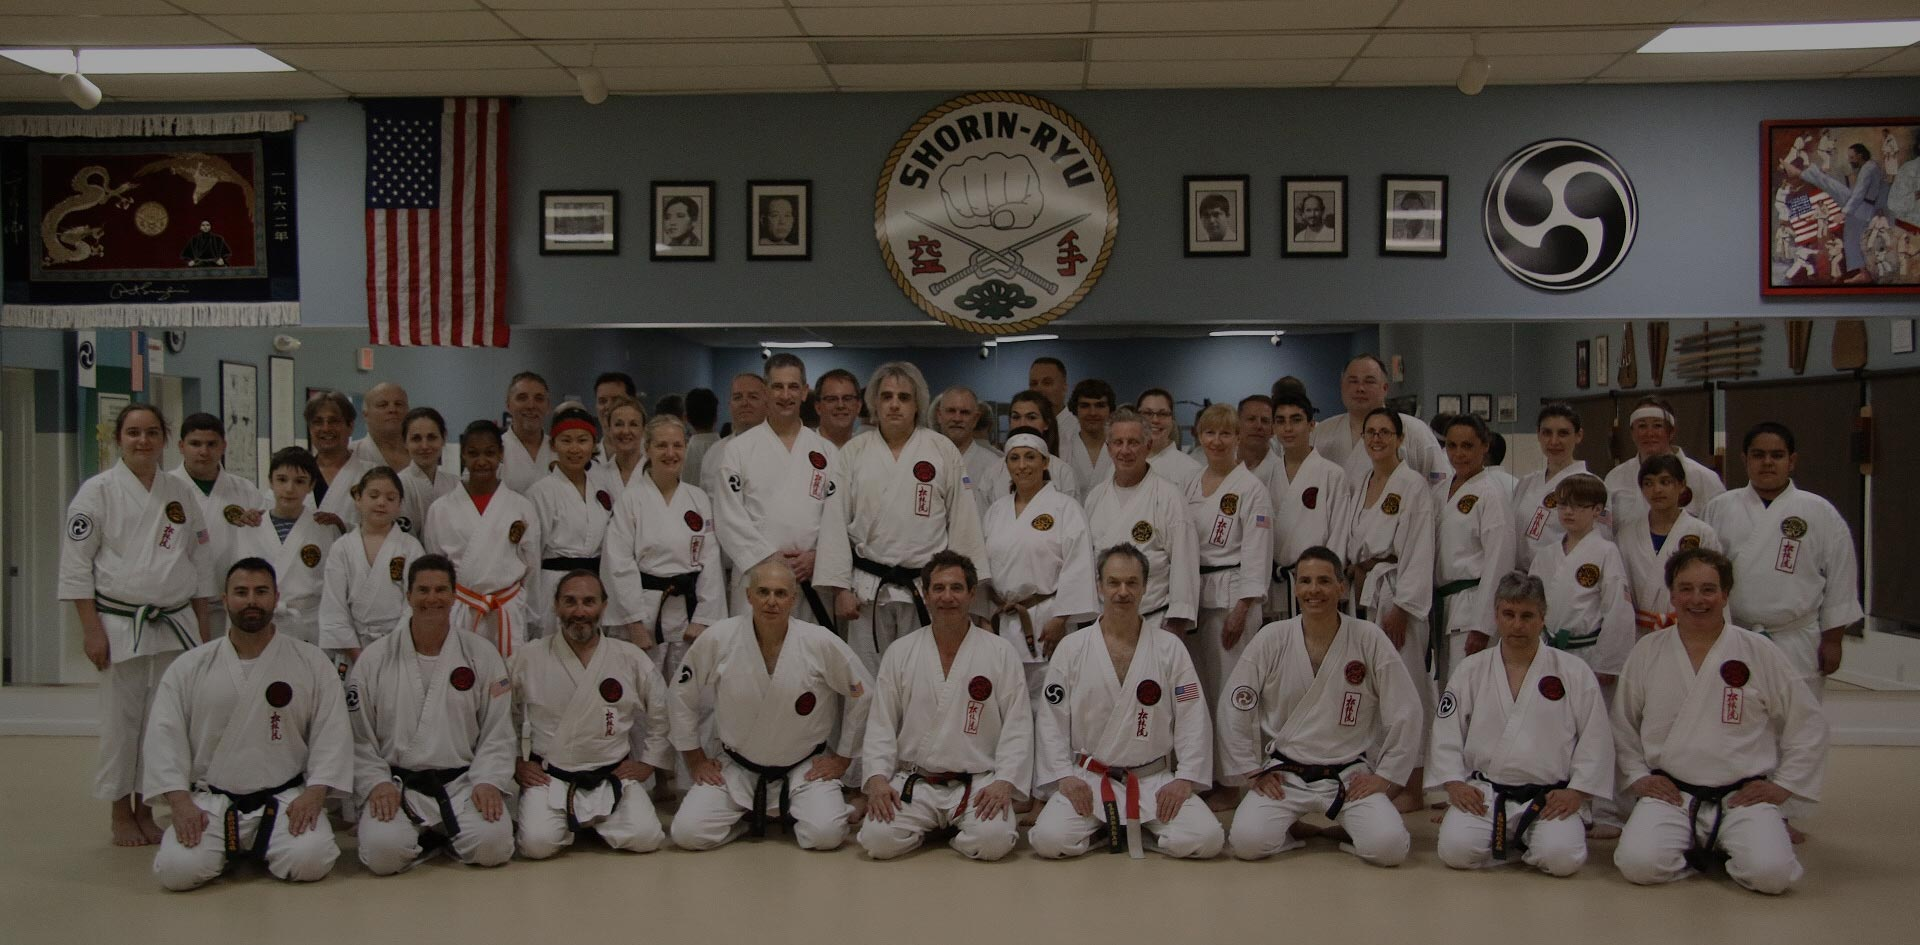 Merritt Island Karate Dojo members group photo